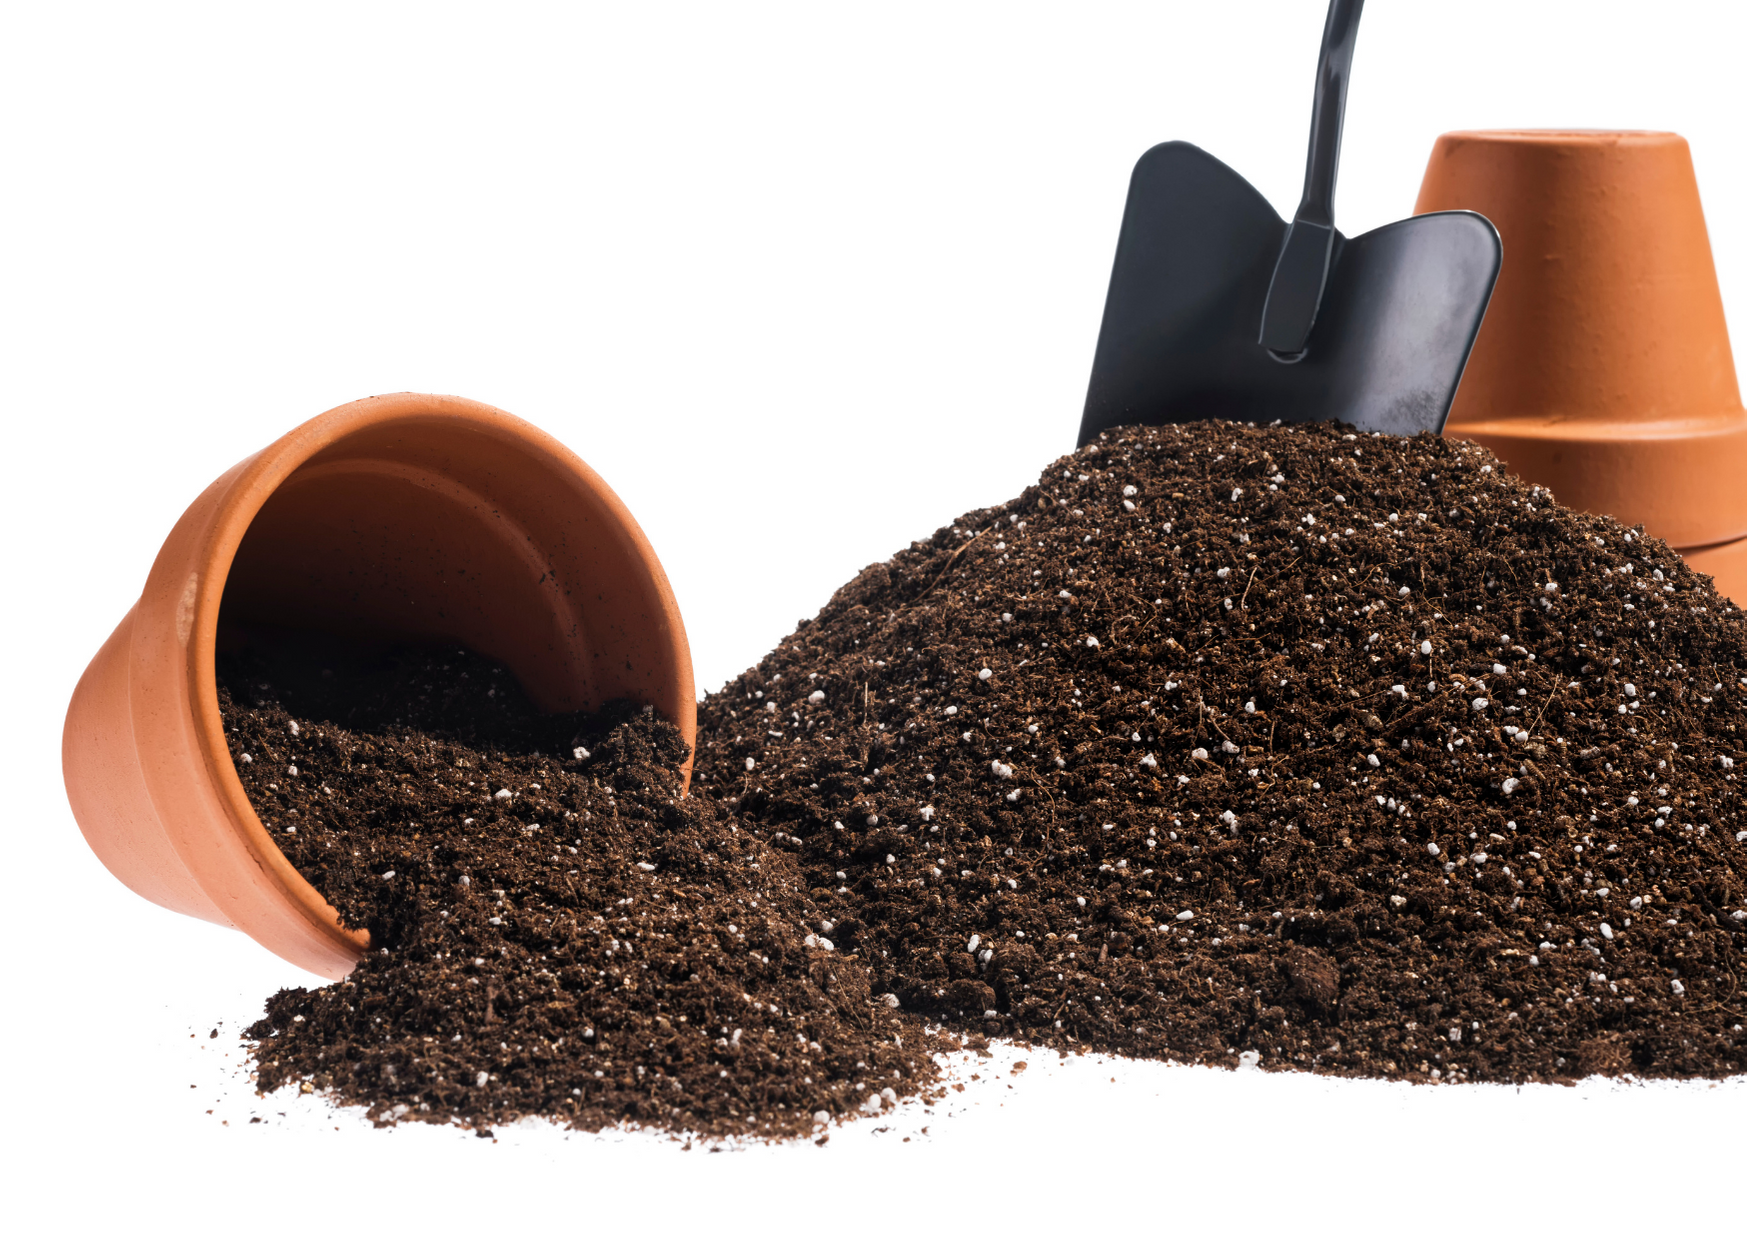 image of soil, pot and a shovel in white backgroud